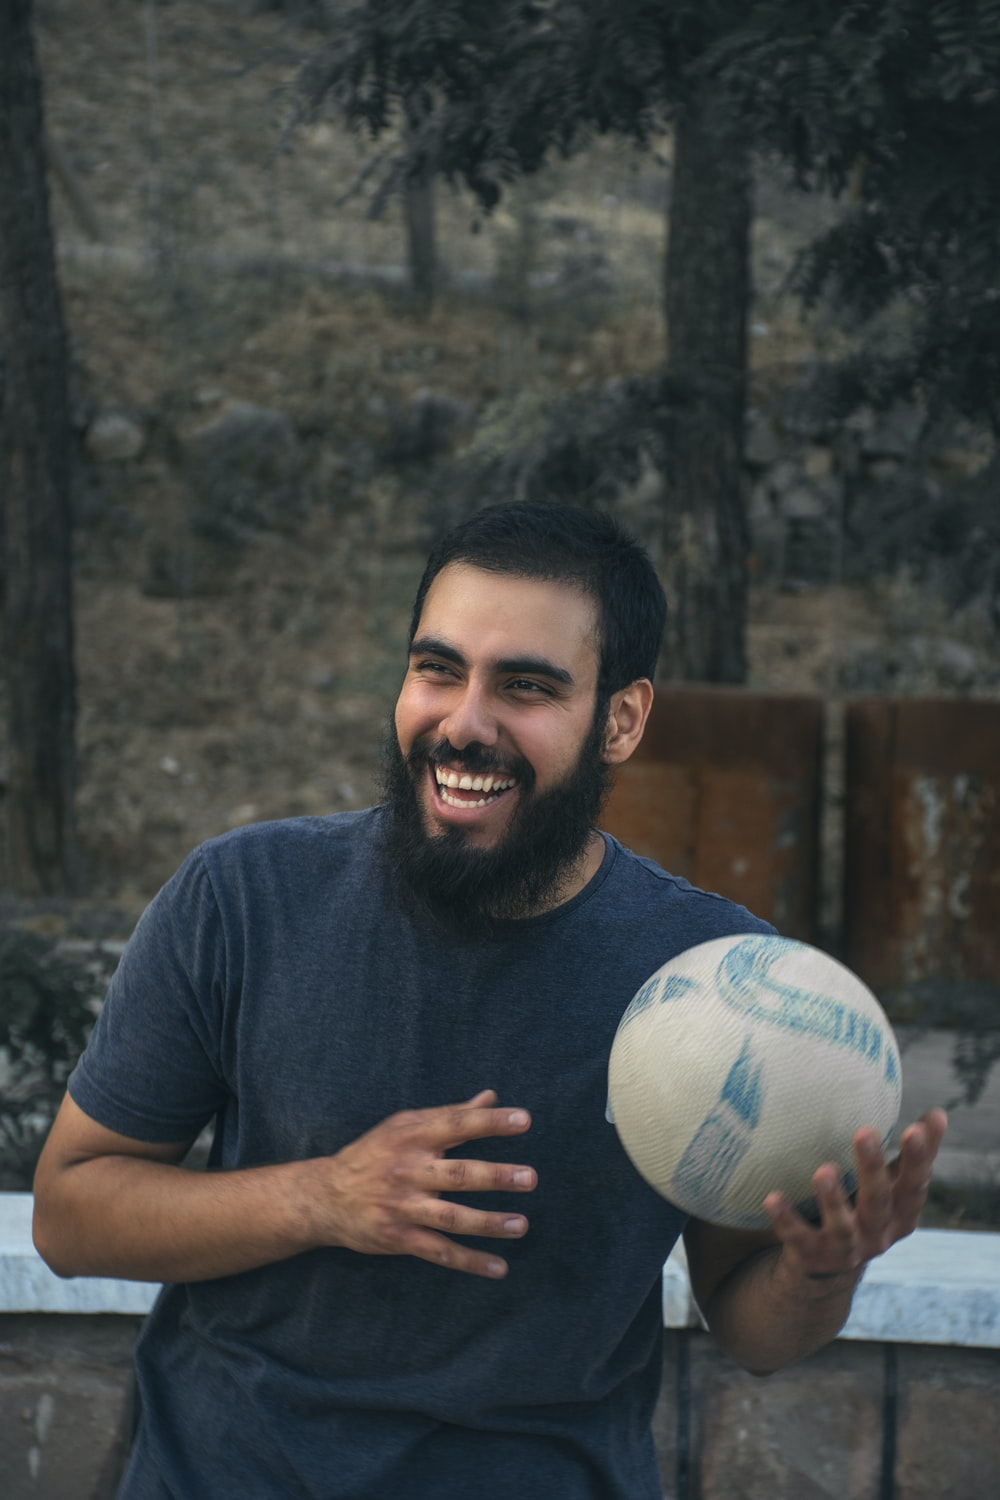 man holding ball